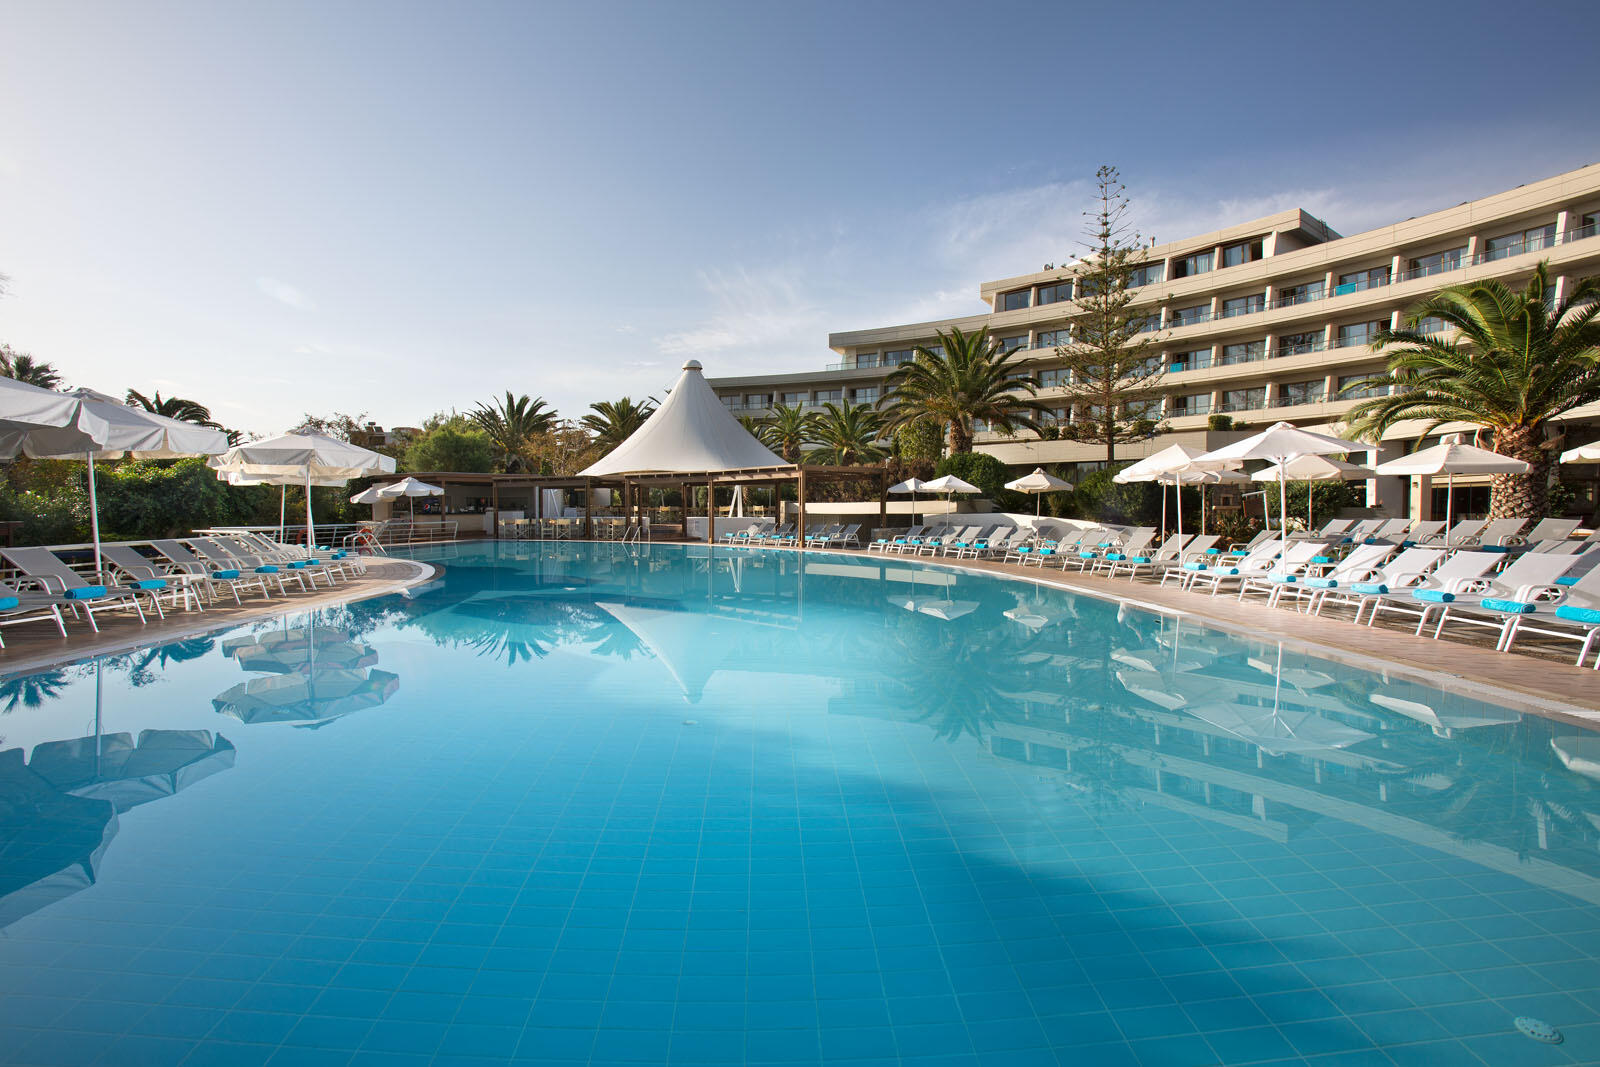 Main pool at Agapi Beach Resort in Crete